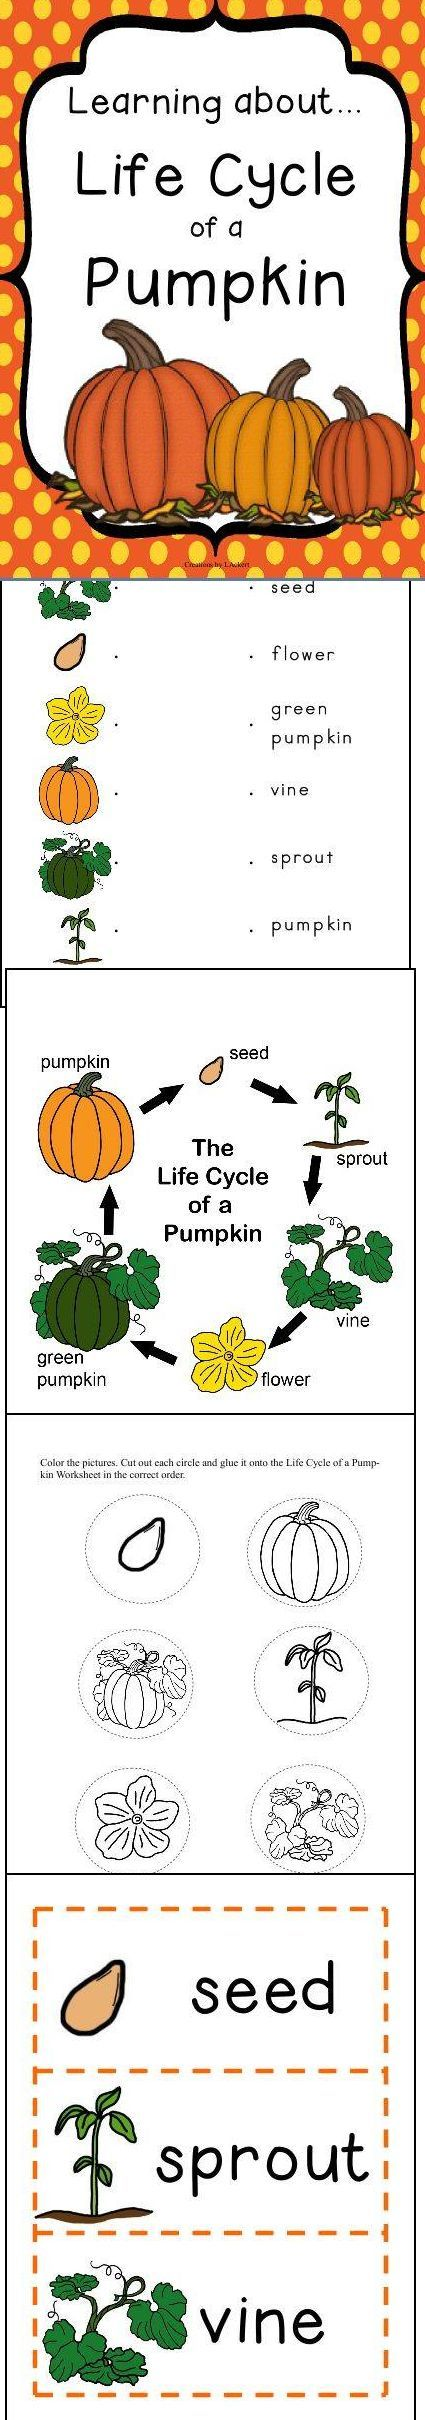 Life Cycle of a Pumpkin Unit! http://www.christianhomeschoolhub.spruz.com/pt/Fall-Related-Resources/wiki.htm